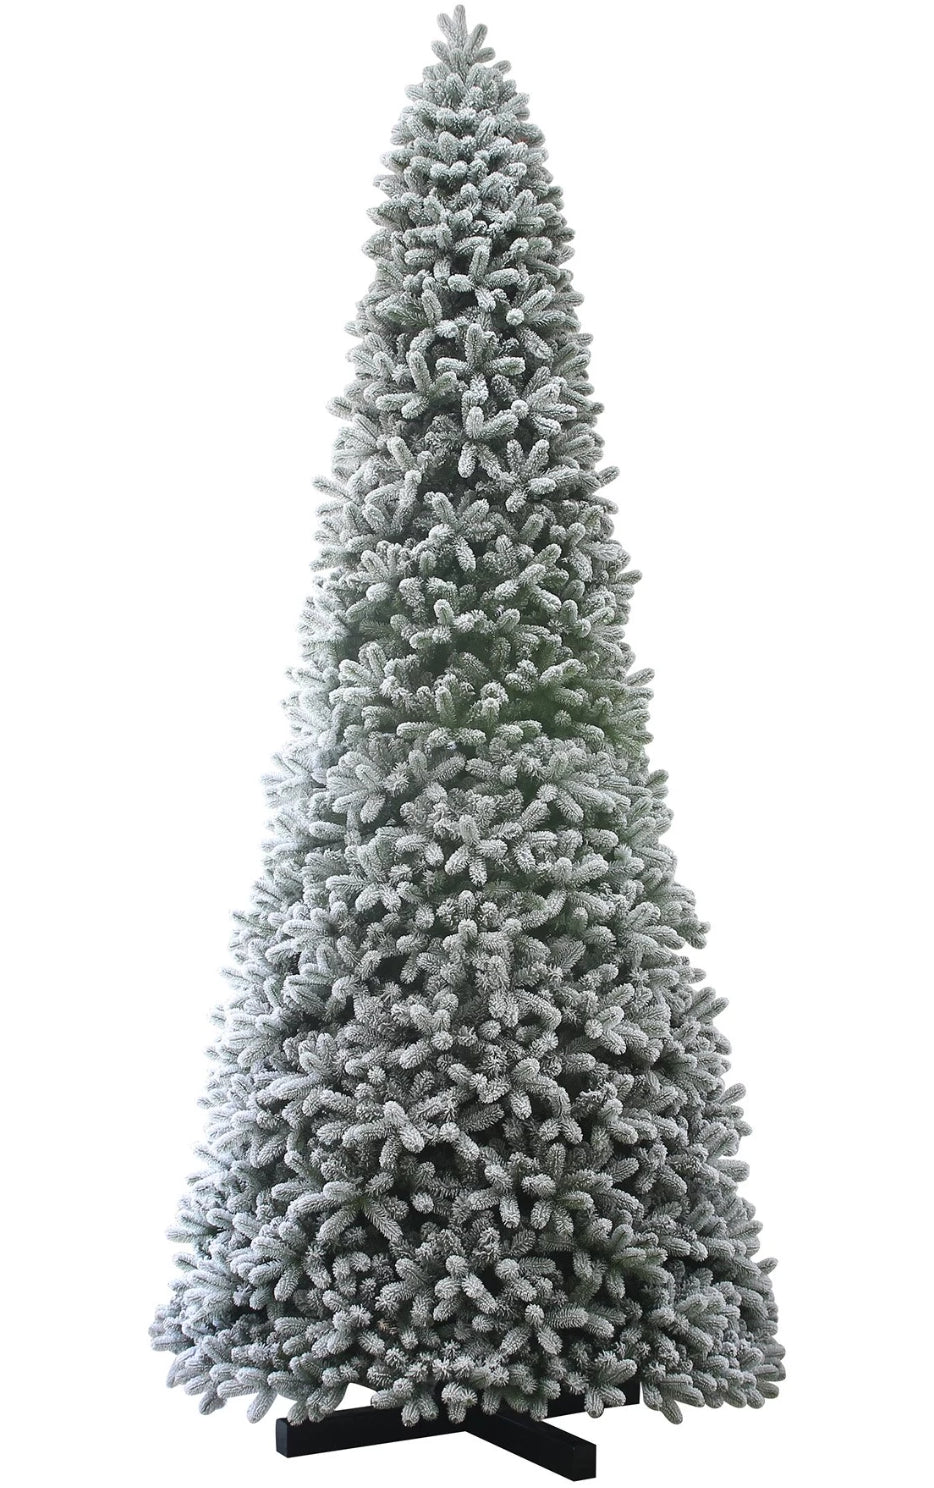 15 Foot King Flock® Quick-Shape Artificial Christmas Tree with 2000 Warm White LED Lights